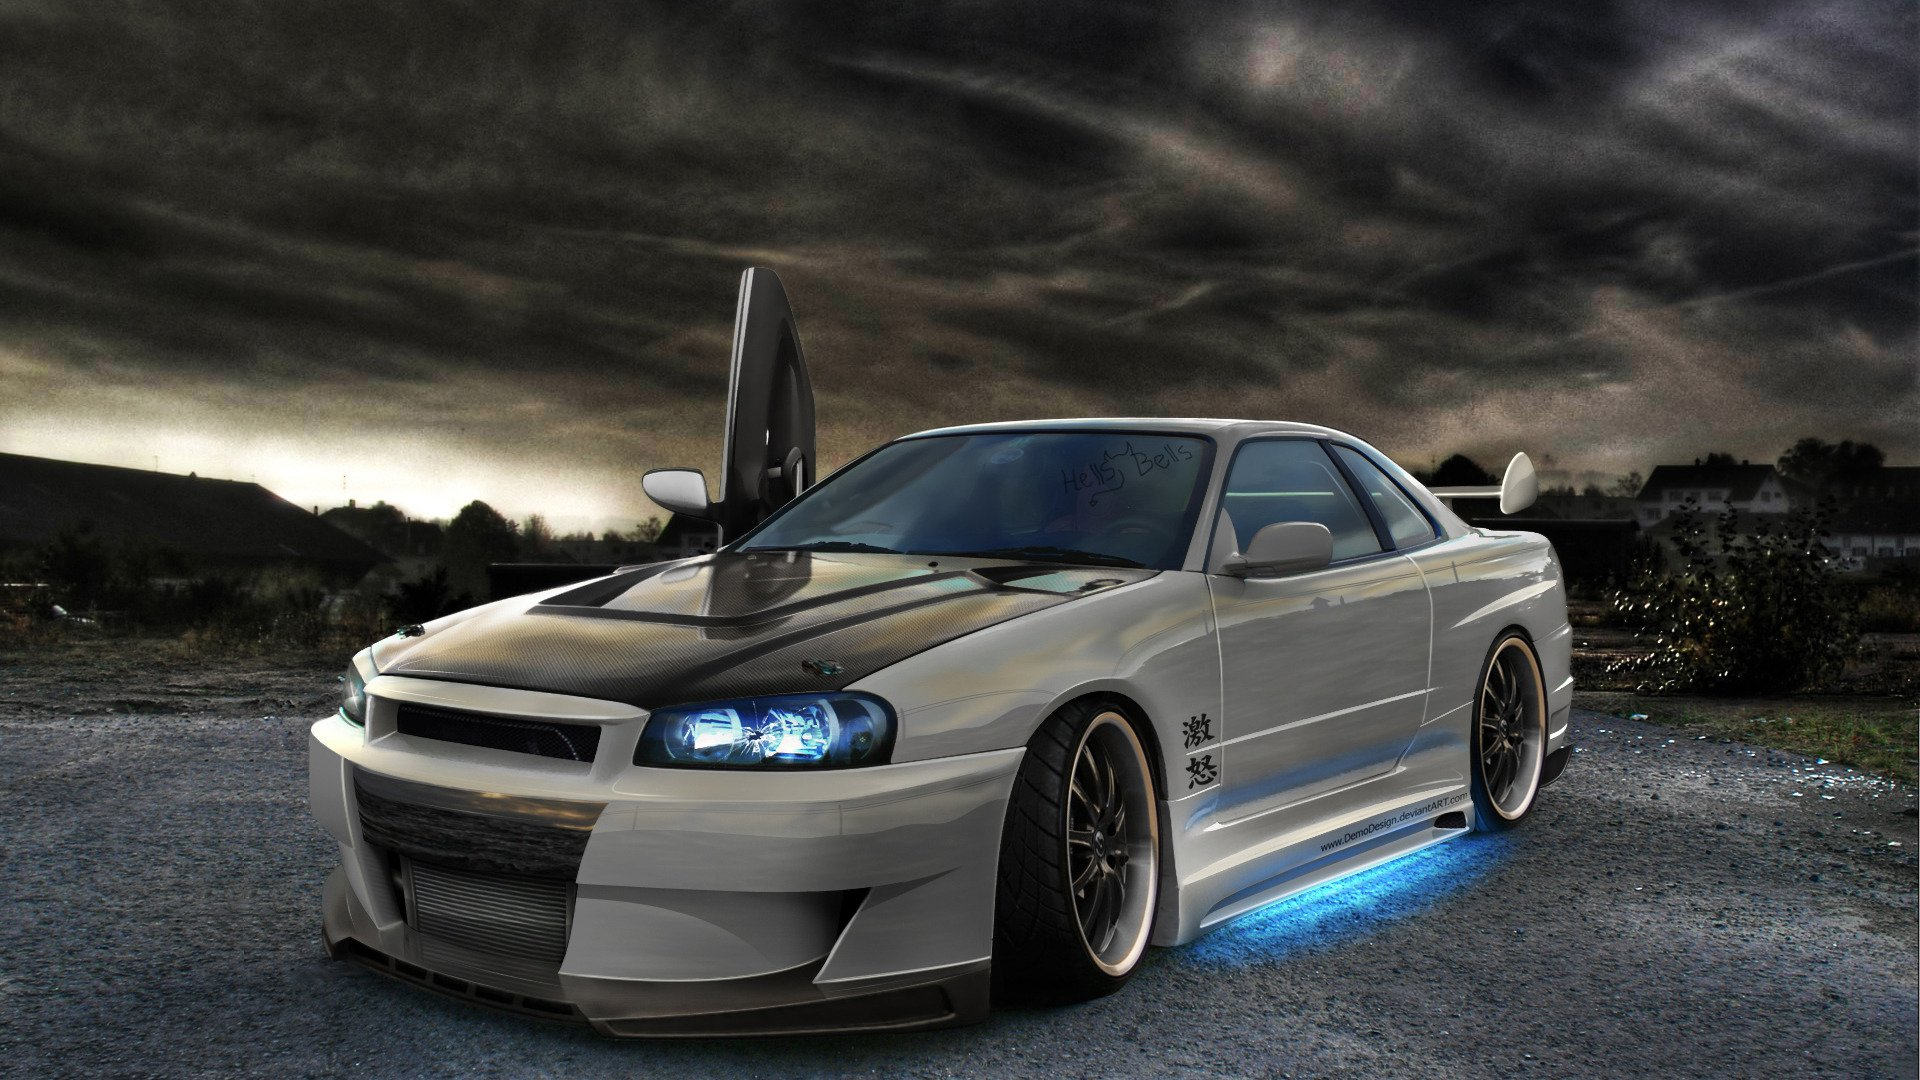 nissan gtr r34 wallpaper wallpapersafari. Black Bedroom Furniture Sets. Home Design Ideas